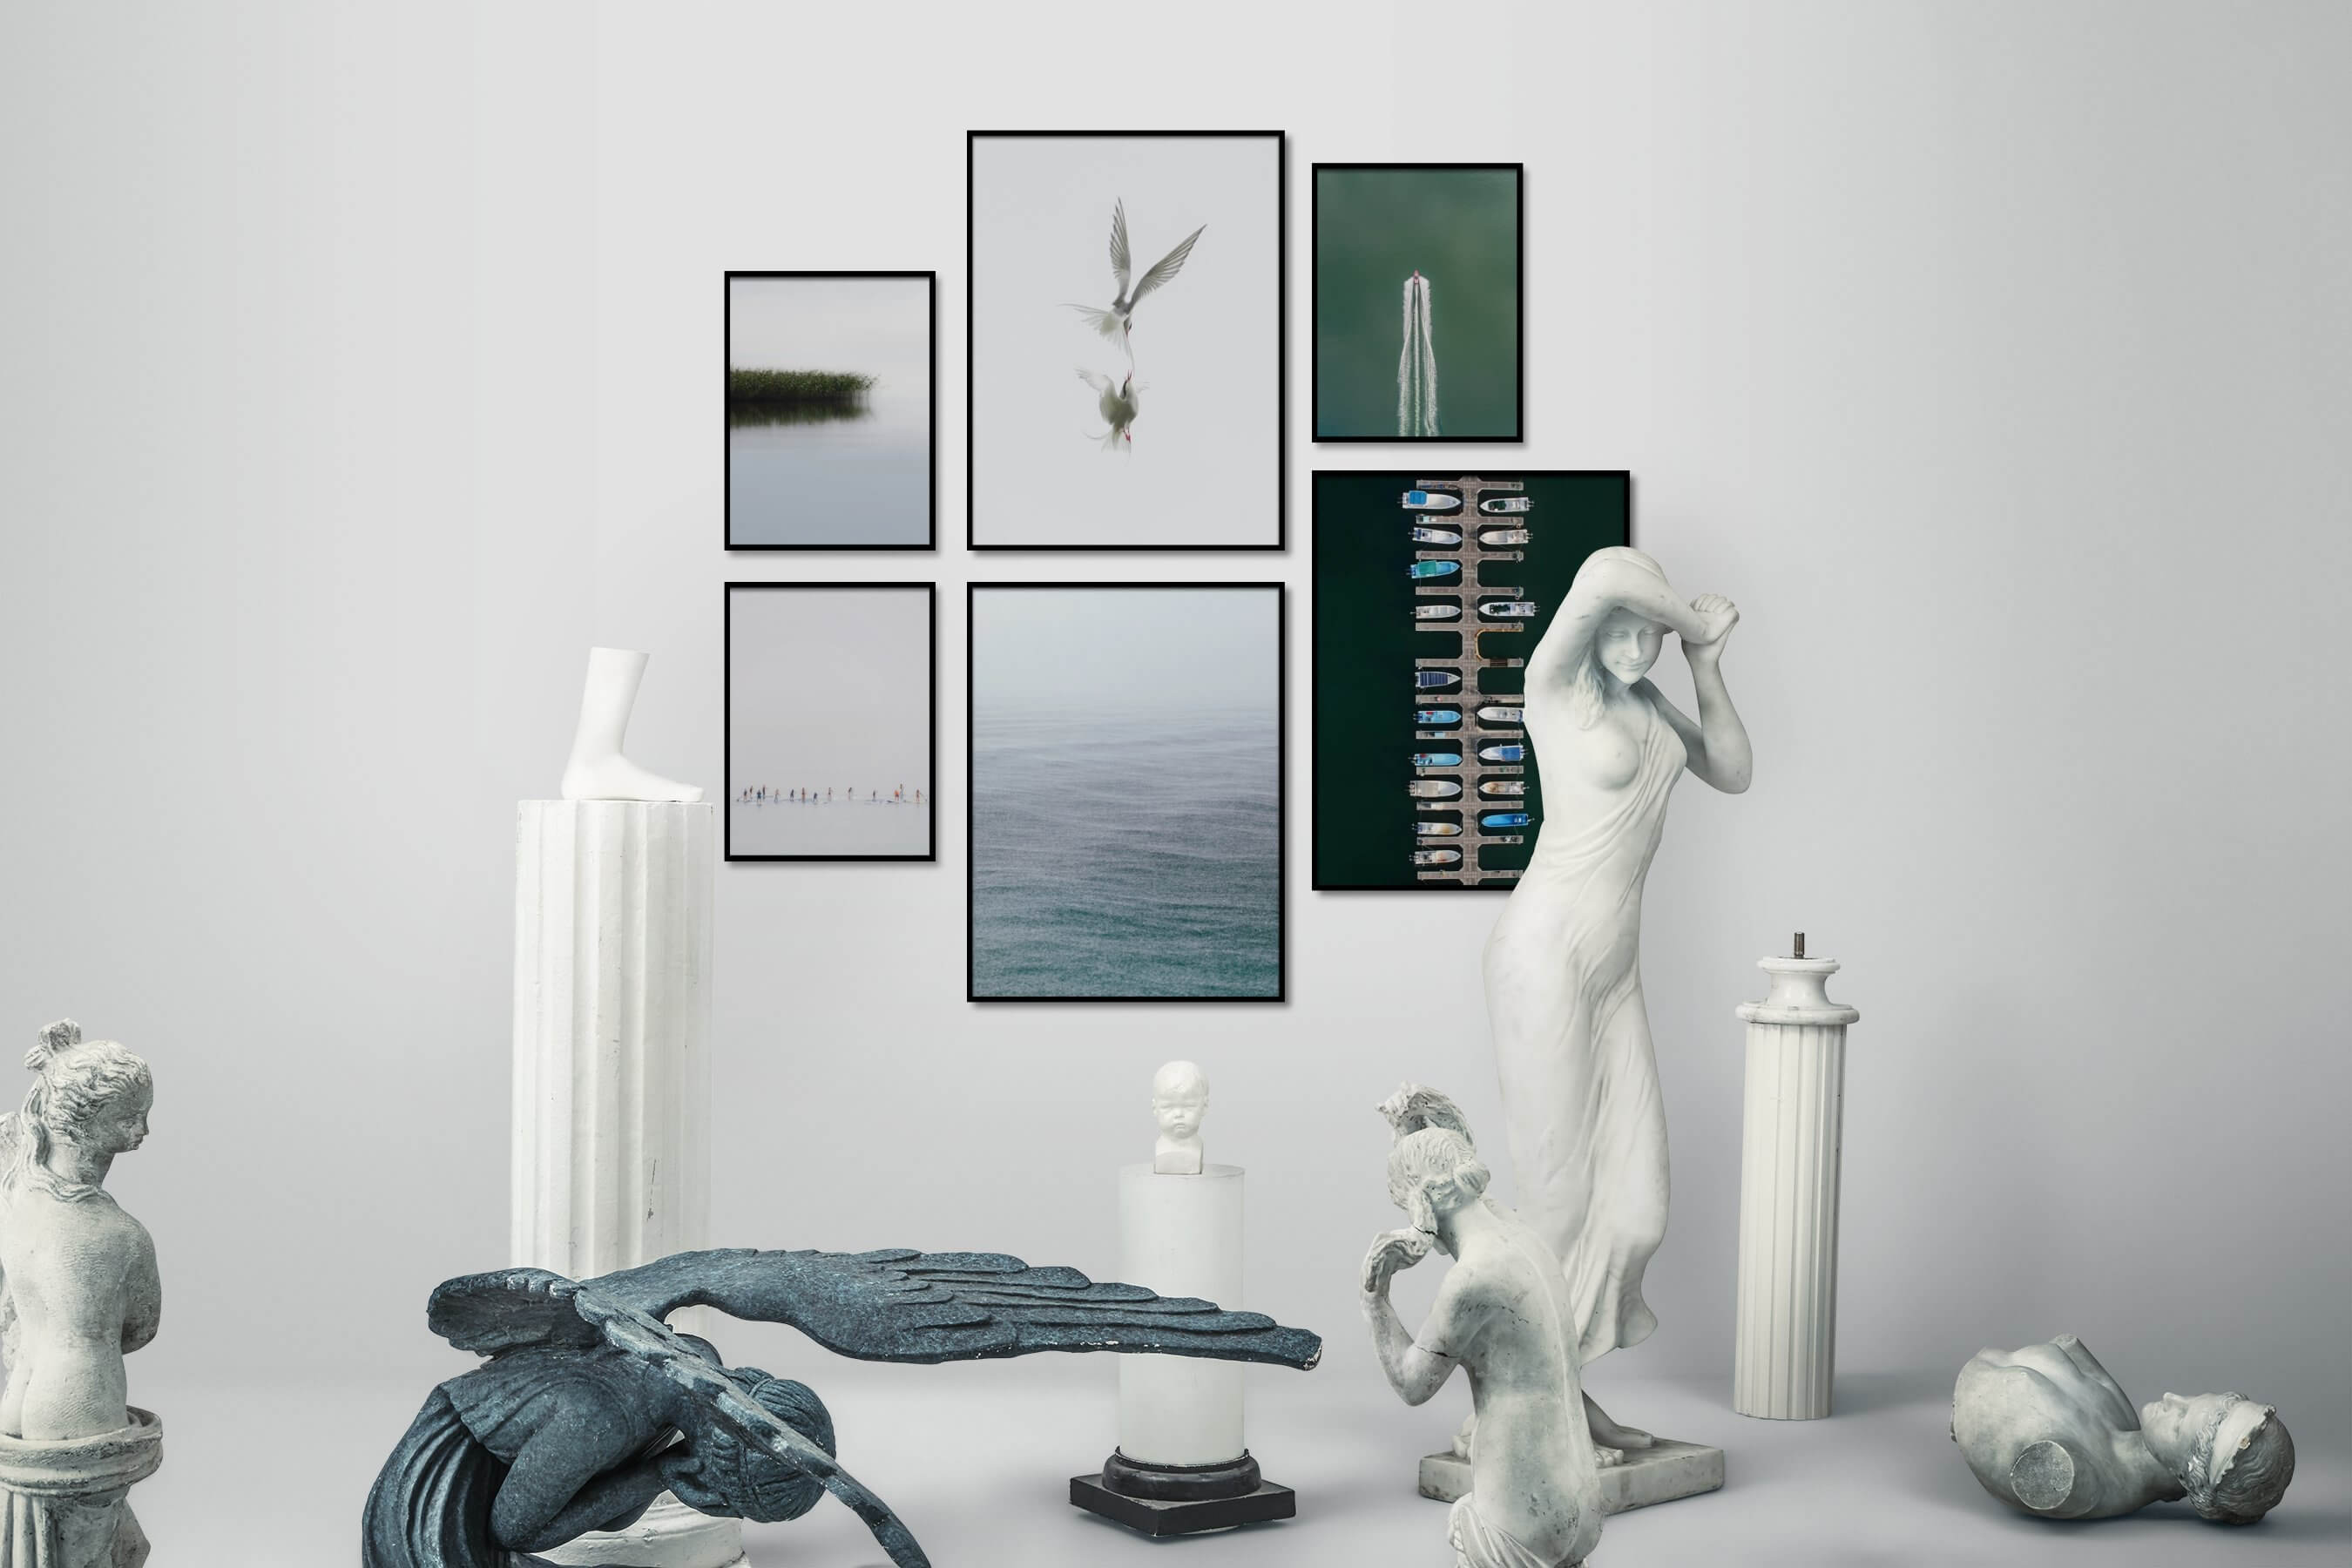 Gallery wall idea with six framed pictures arranged on a wall depicting For the Minimalist, Nature, Beach & Water, Mindfulness, Bright Tones, Animals, and For the Moderate